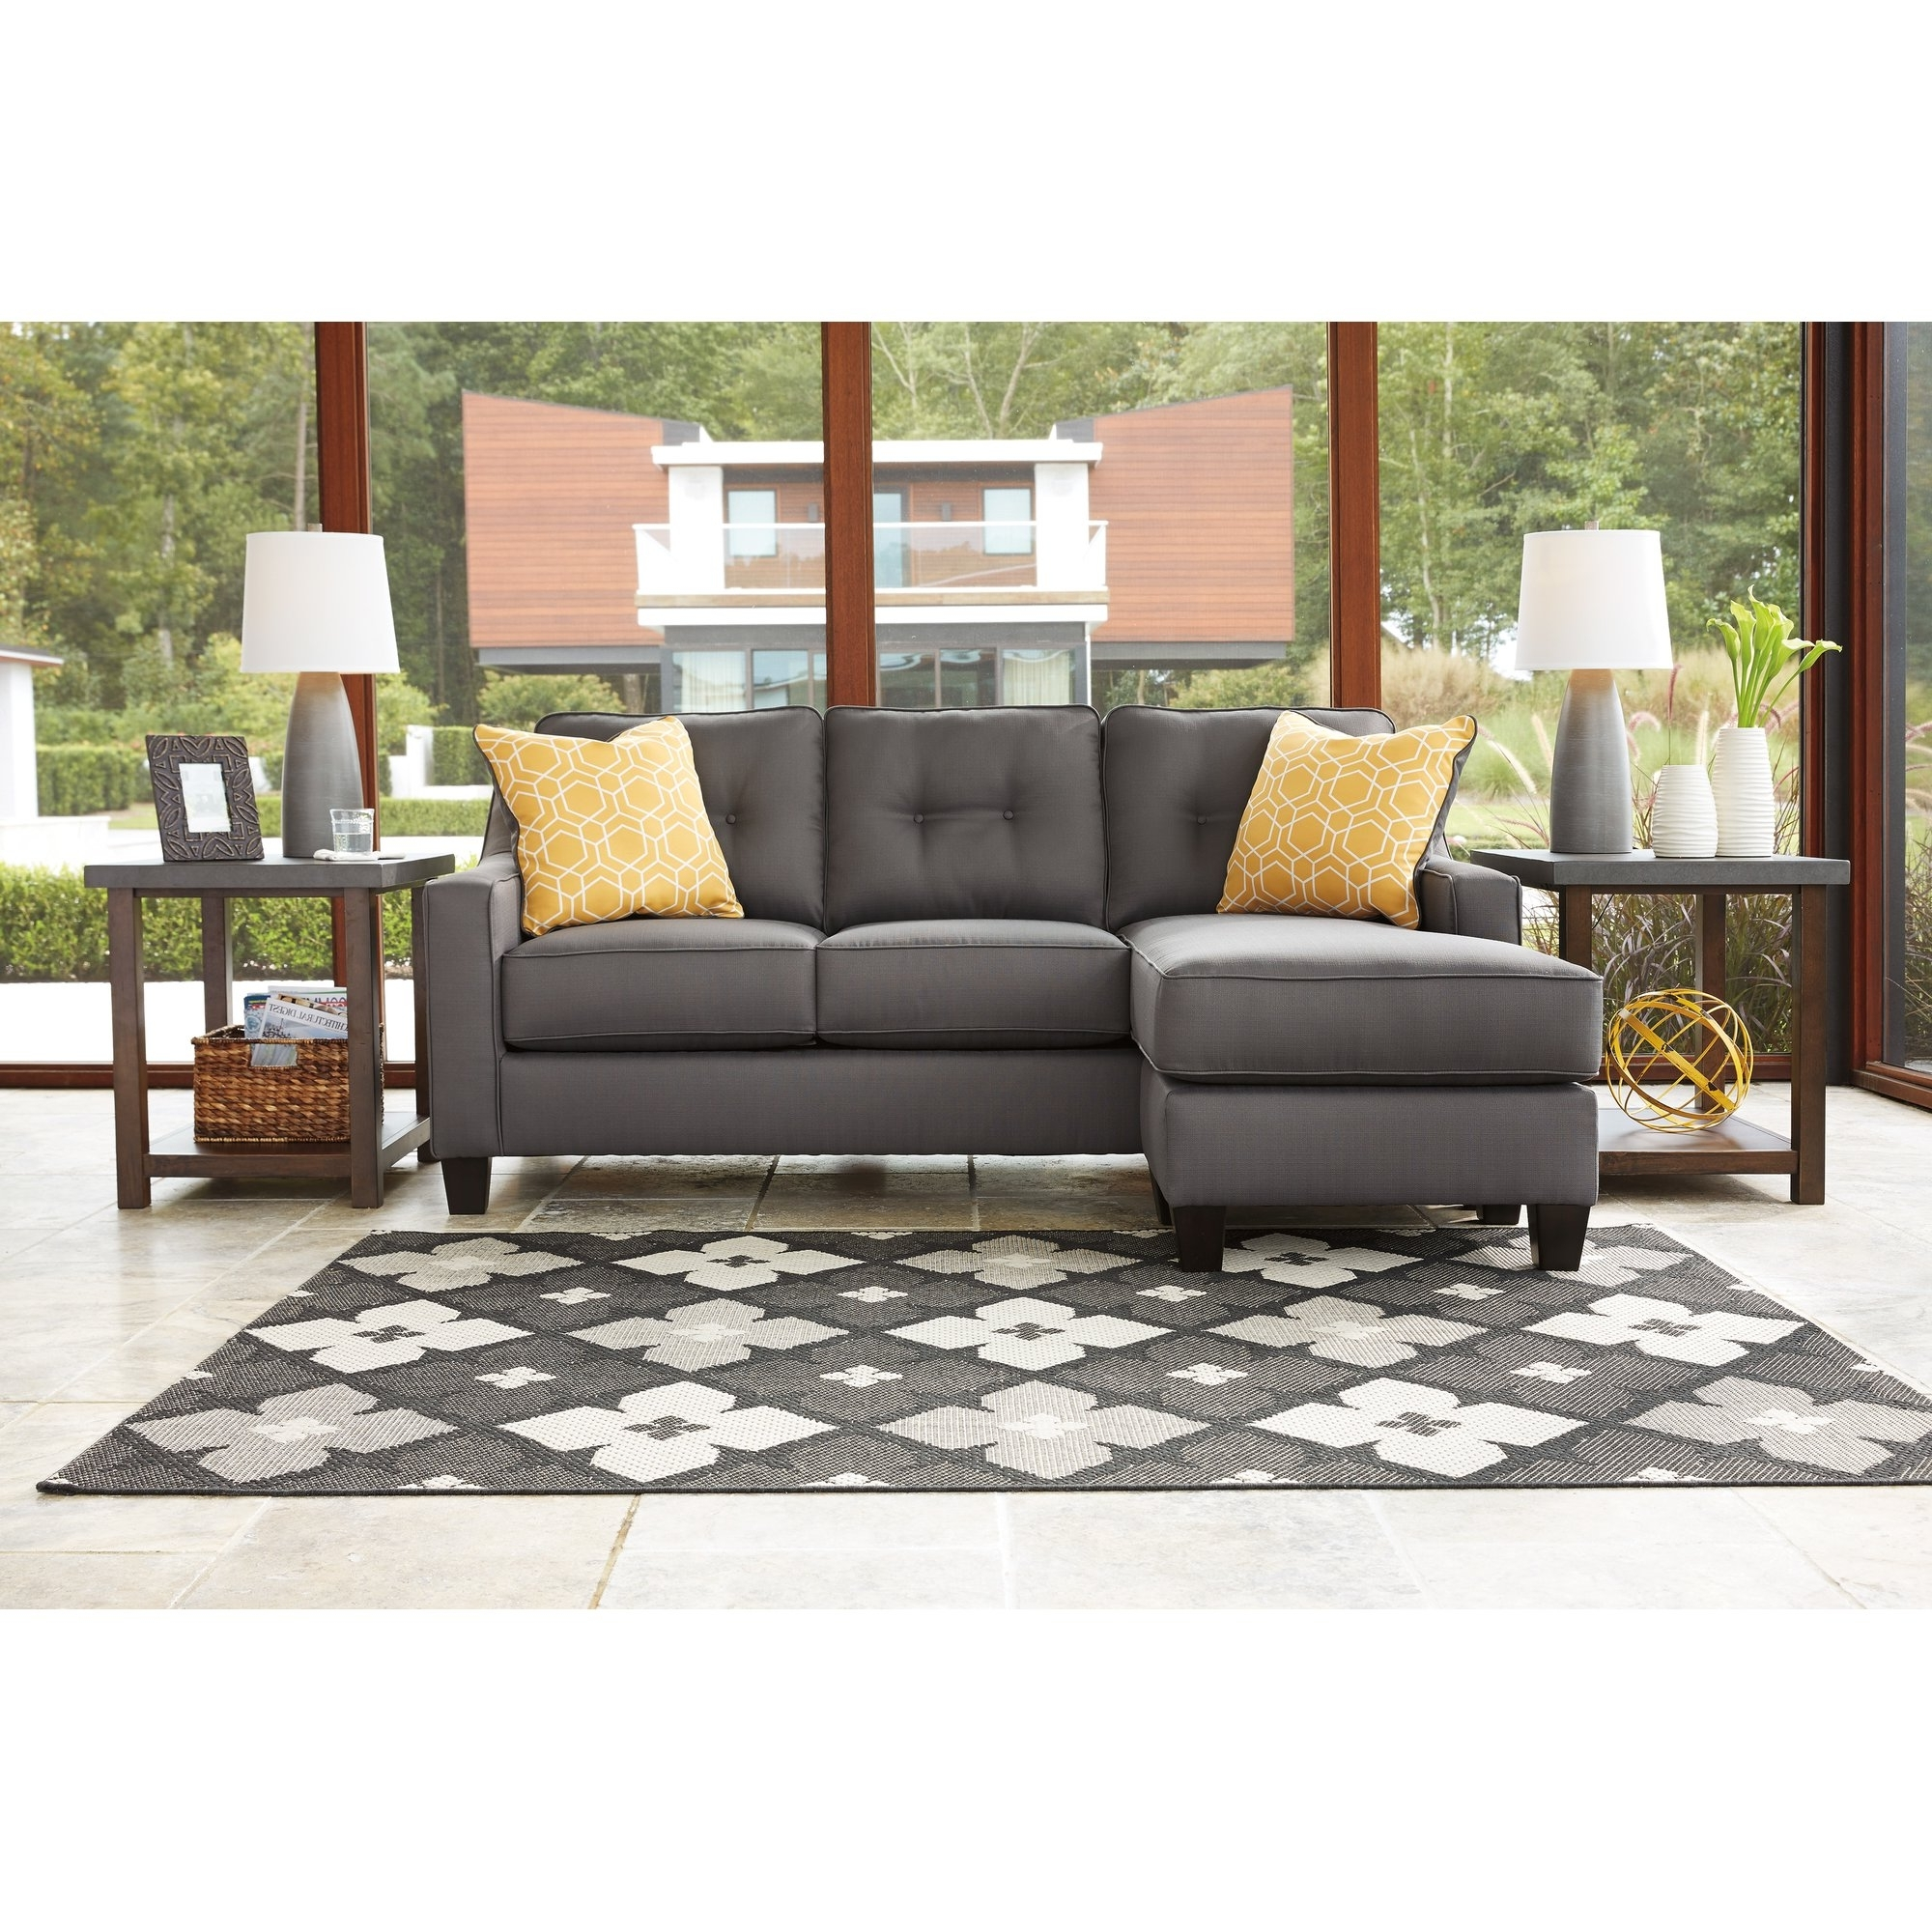 Widely Used Furniture: Sofa With Movable Chaise (View 13 of 15)